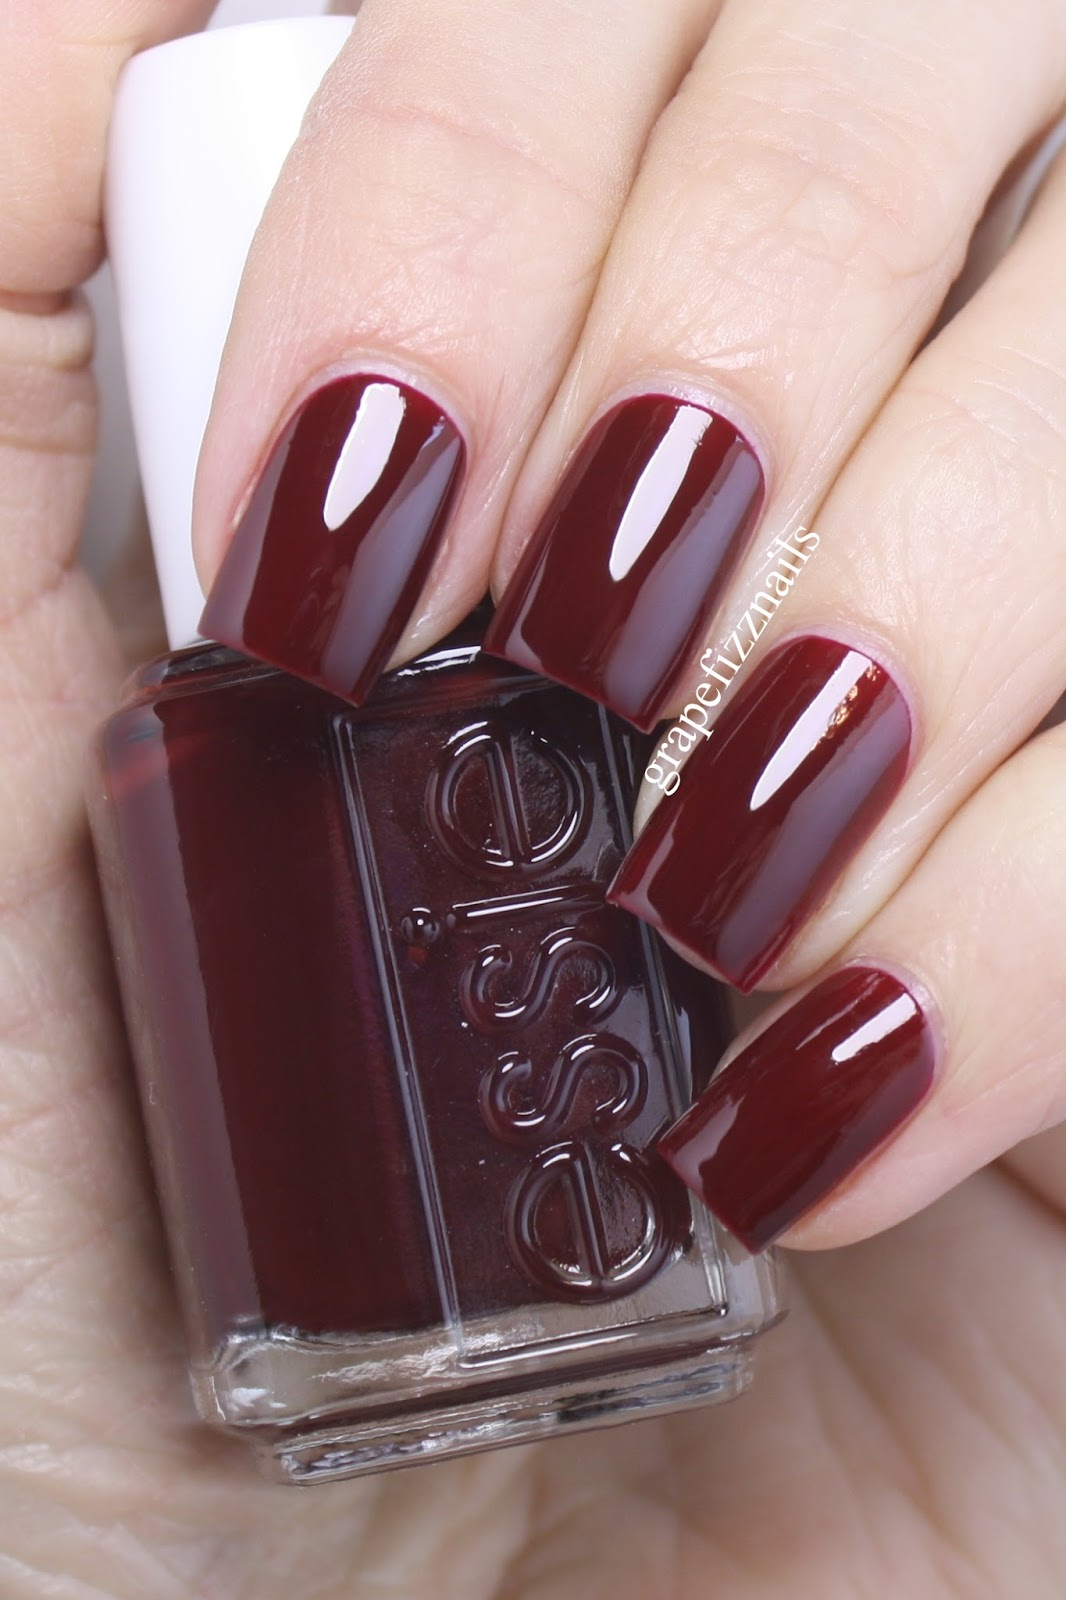 Grape Fizz Nails: Essie Berry Naughty and Sparkle on Top